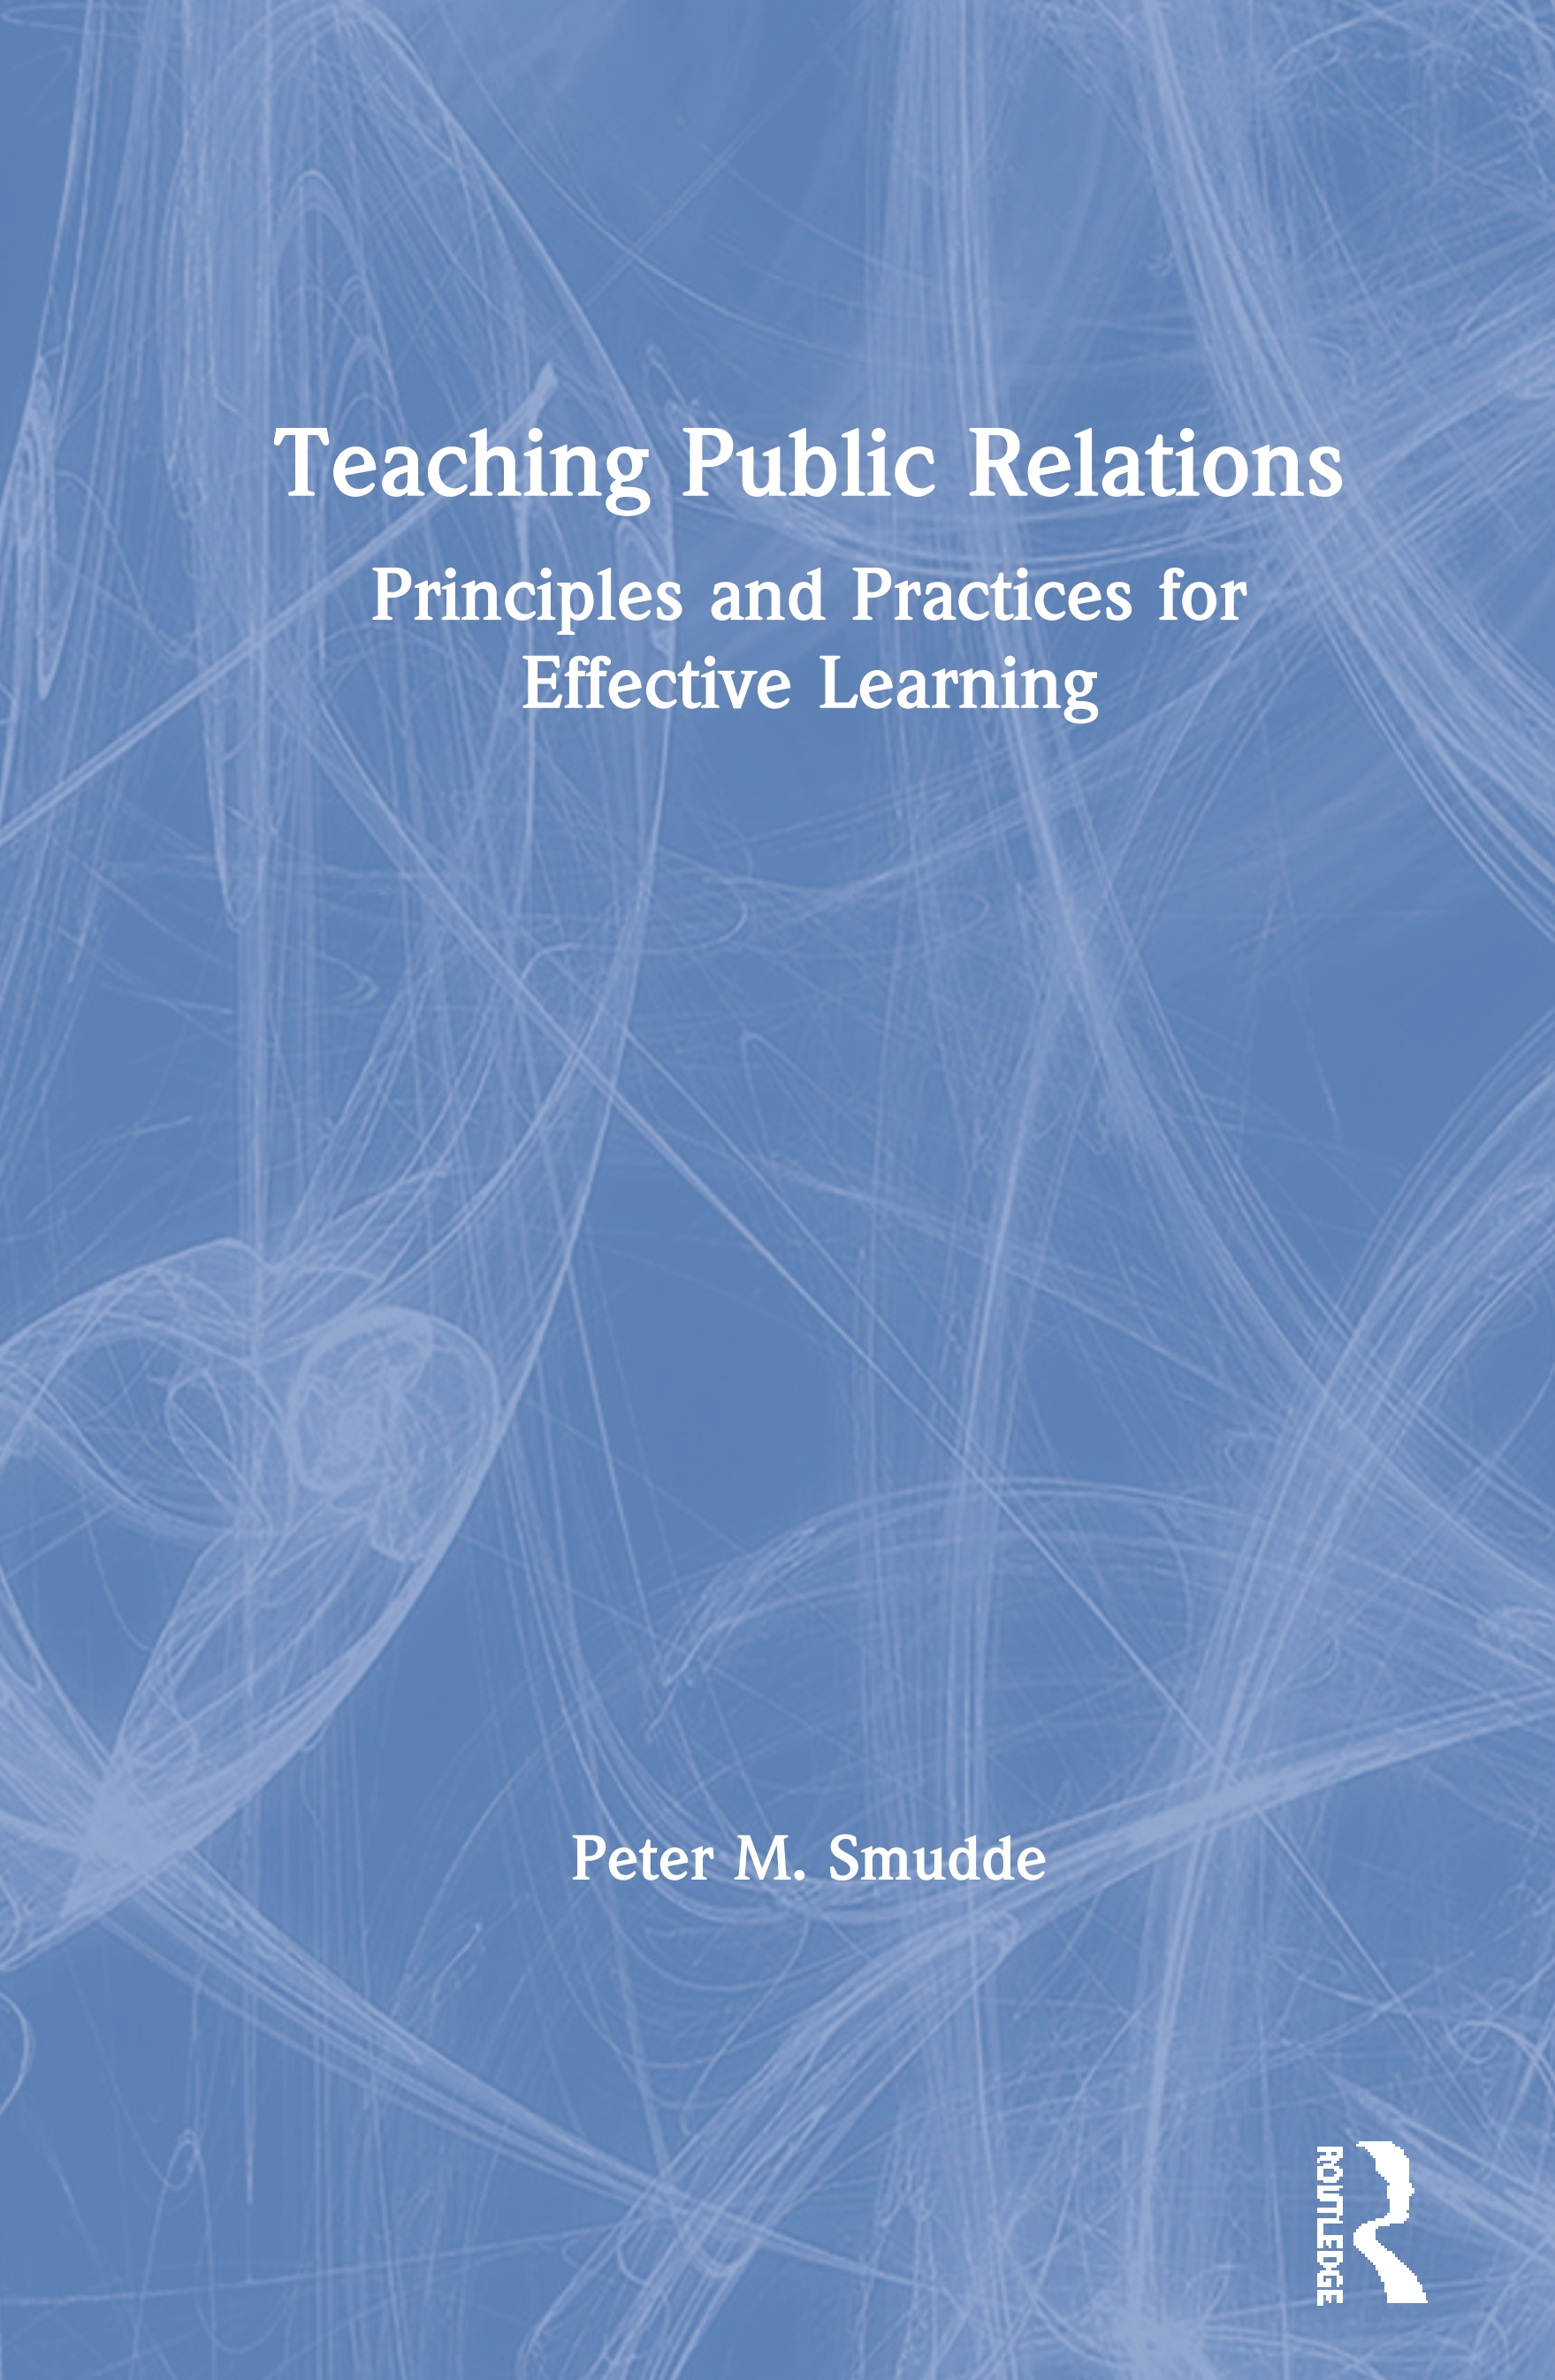 Teaching Public Relations: Principles and Practices for Effective Learning book cover